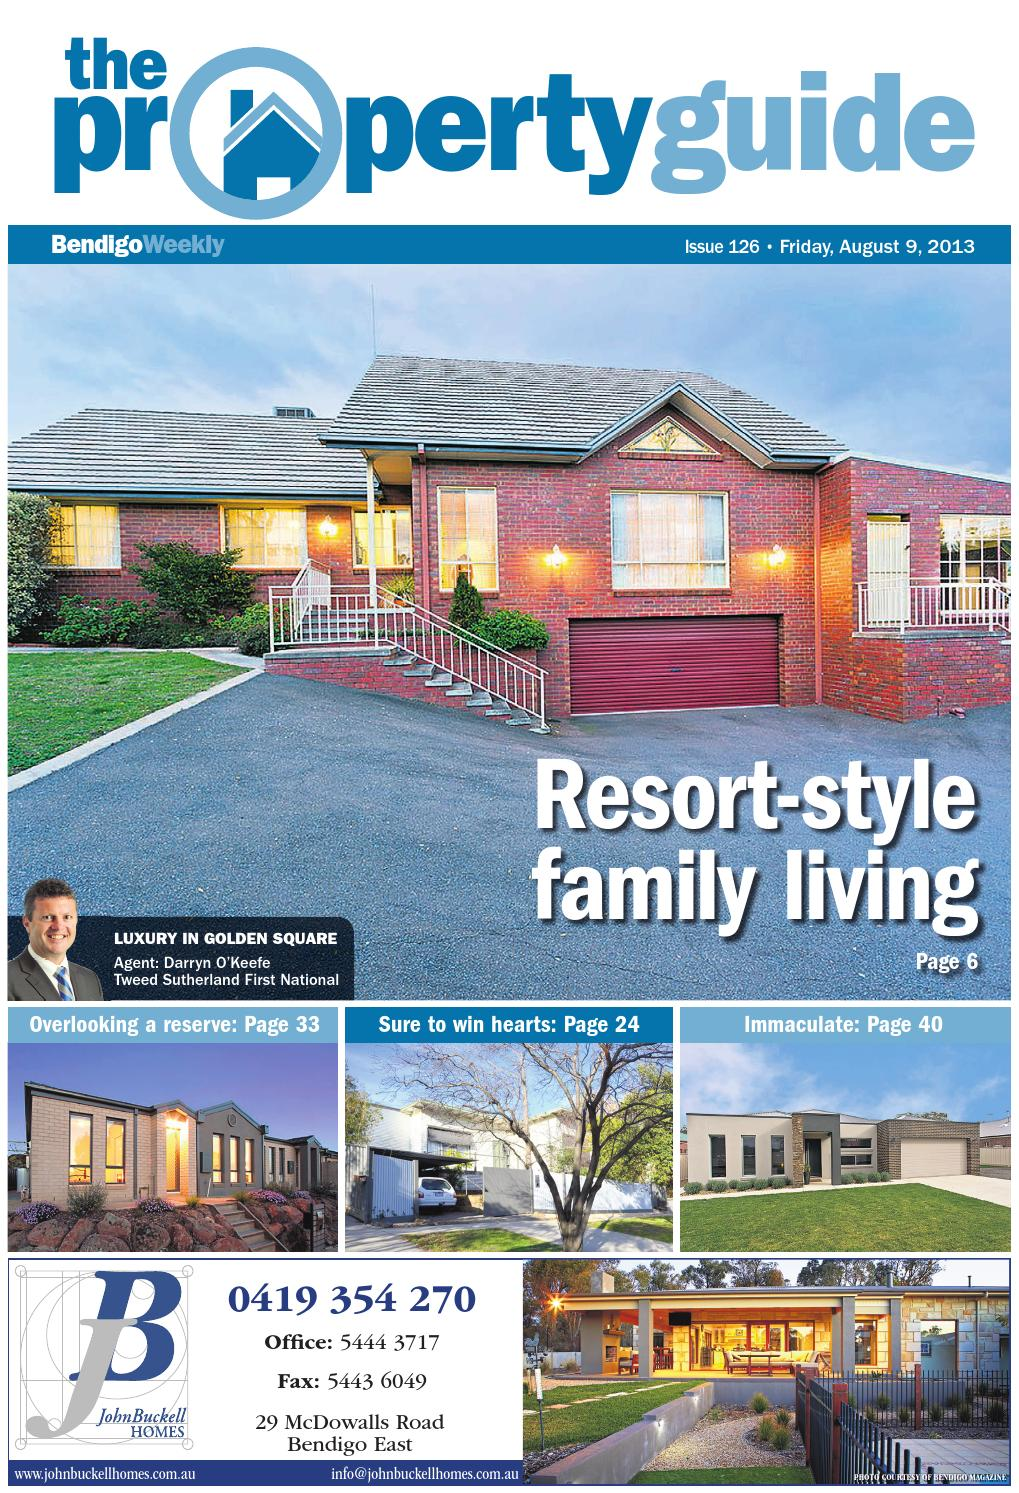 Bendigo Weekly Property Guide issue #826 - Friday, August 9, 2013 by ...